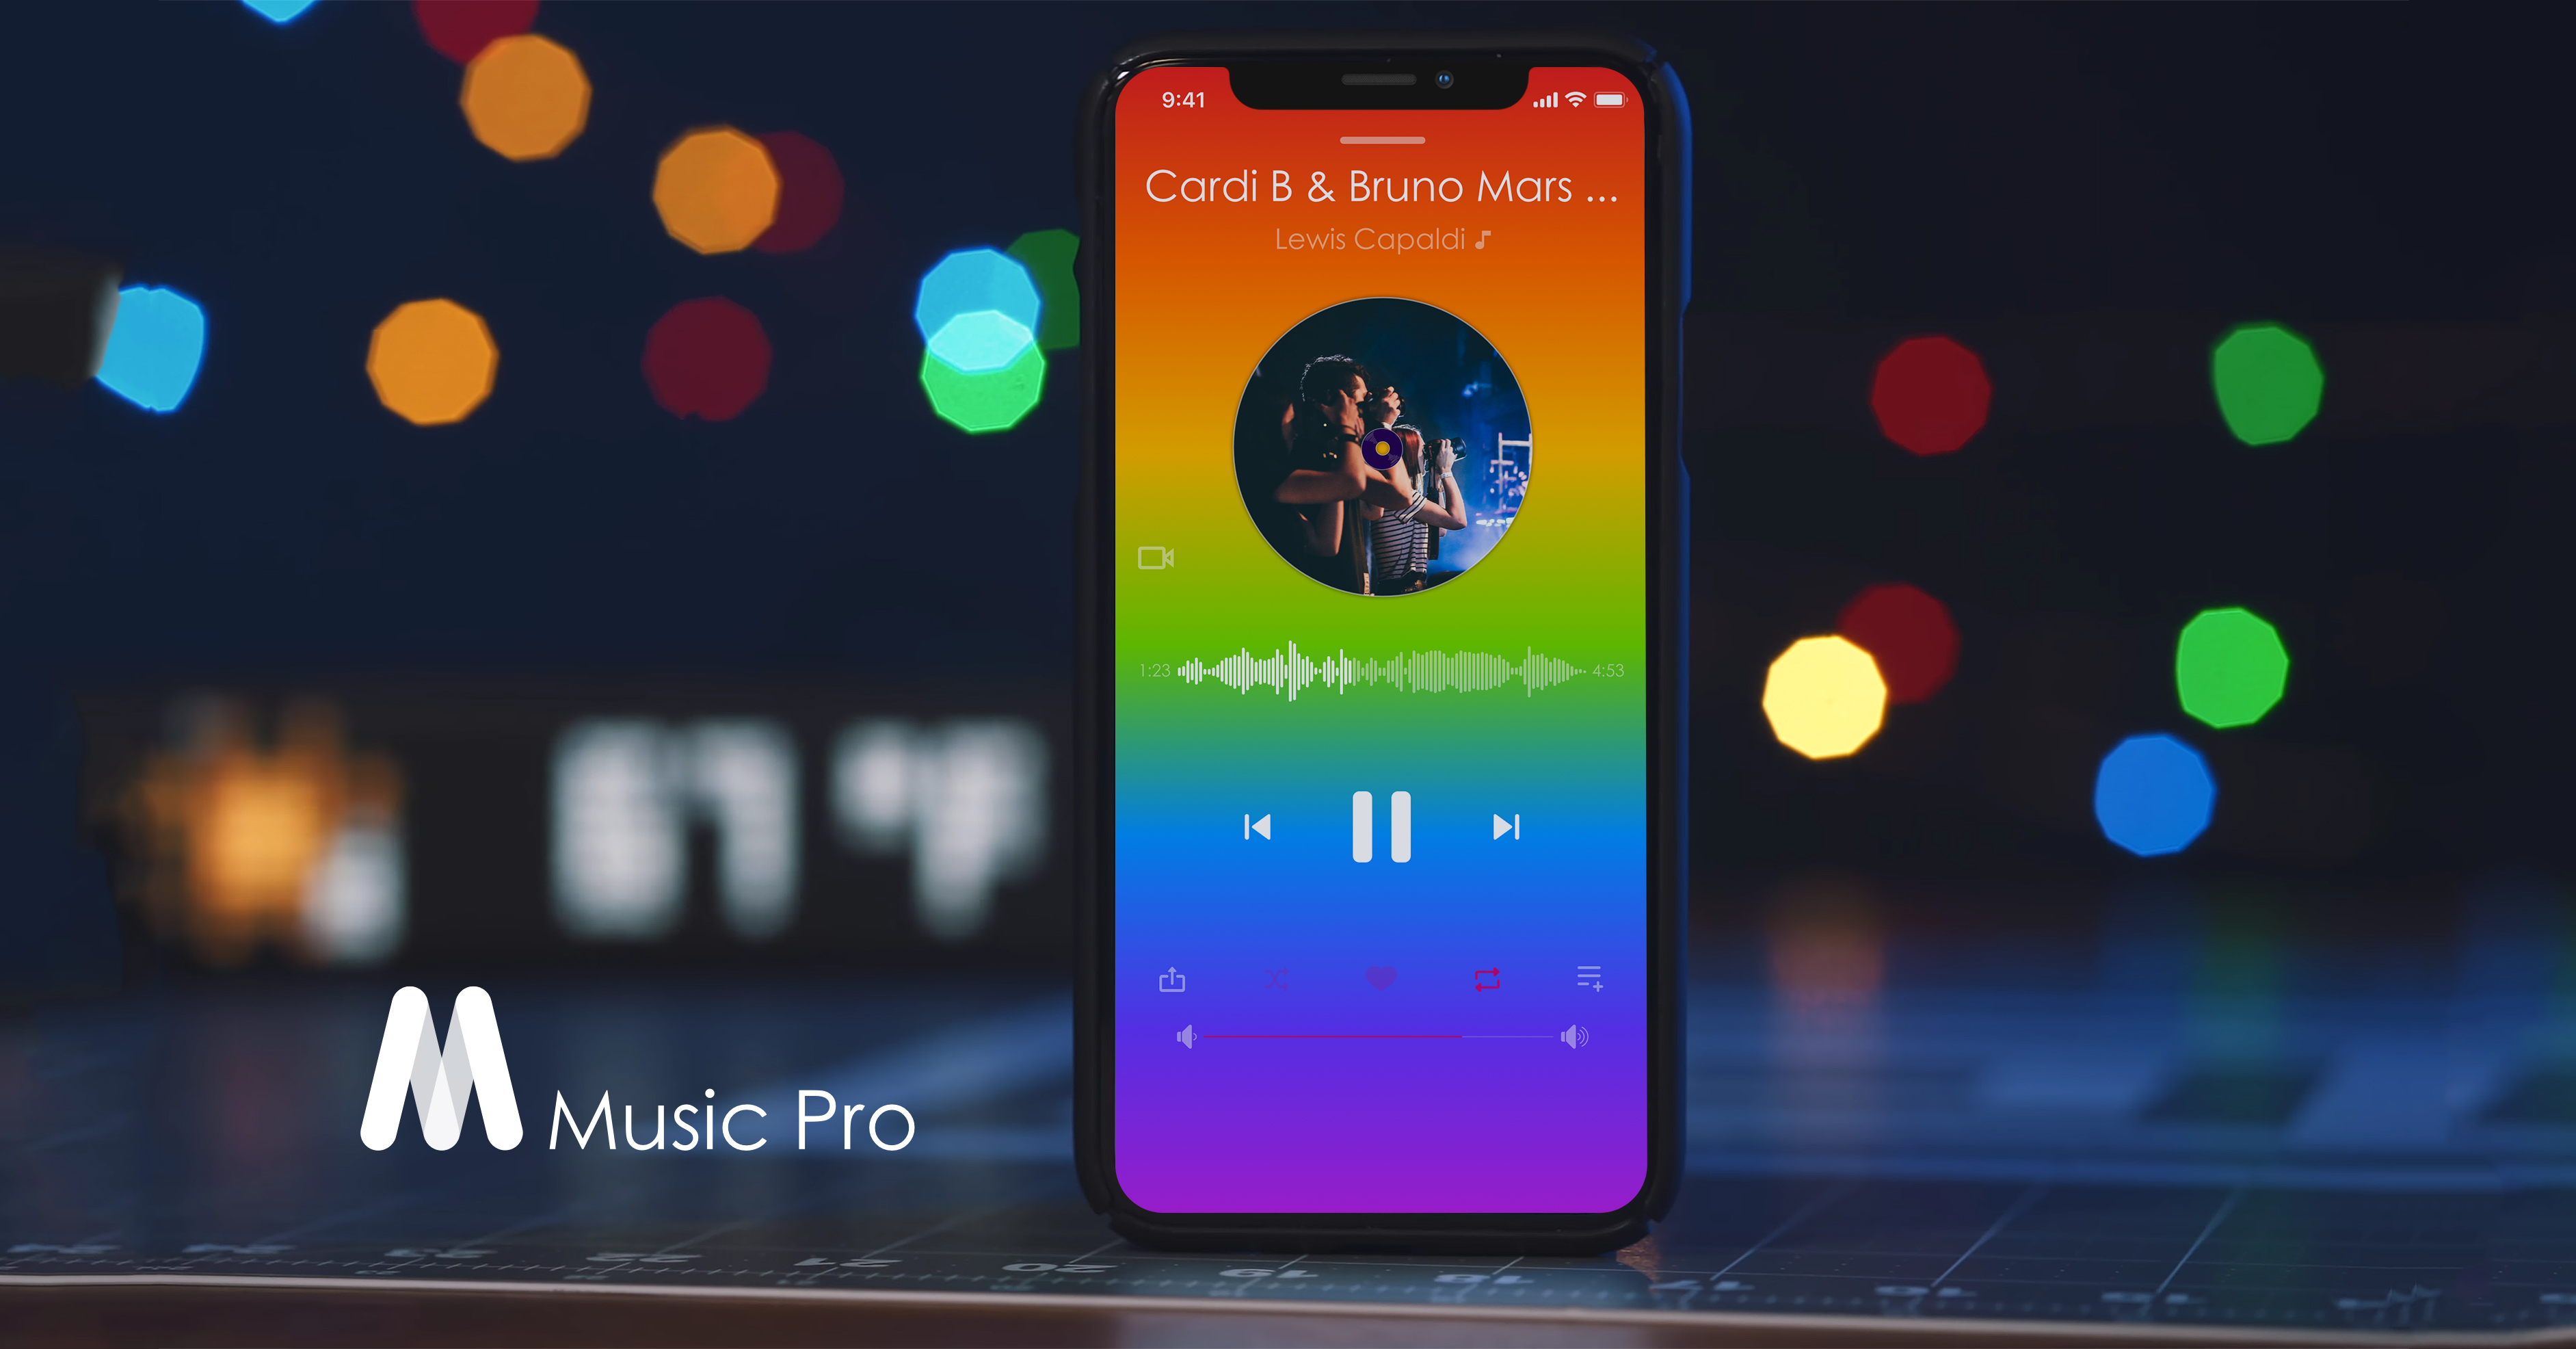 Sforum - The latest technology information page 191-1 Music Pro: The best choice for listening to YouTube music turns off the screen on iPhone